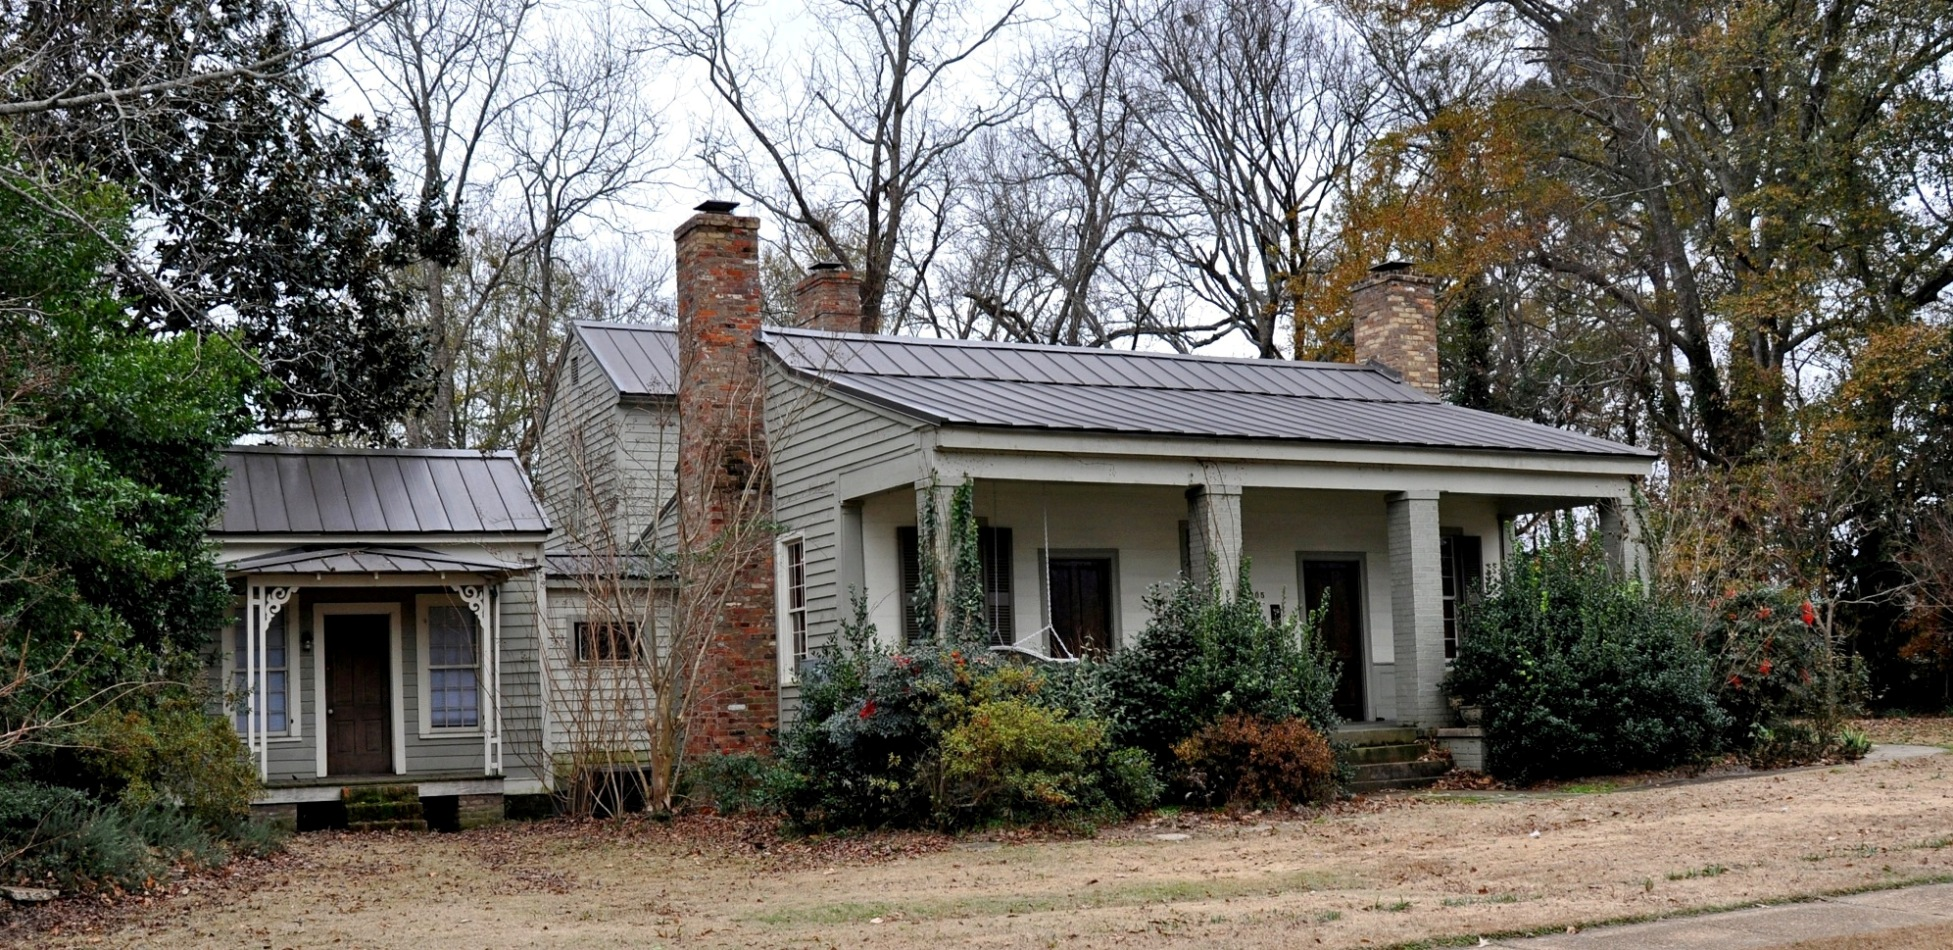 Eutaw (AL) United States  city images : Attoway R. Davis Home at Eutaw, AL 2 Wikimedia Commons